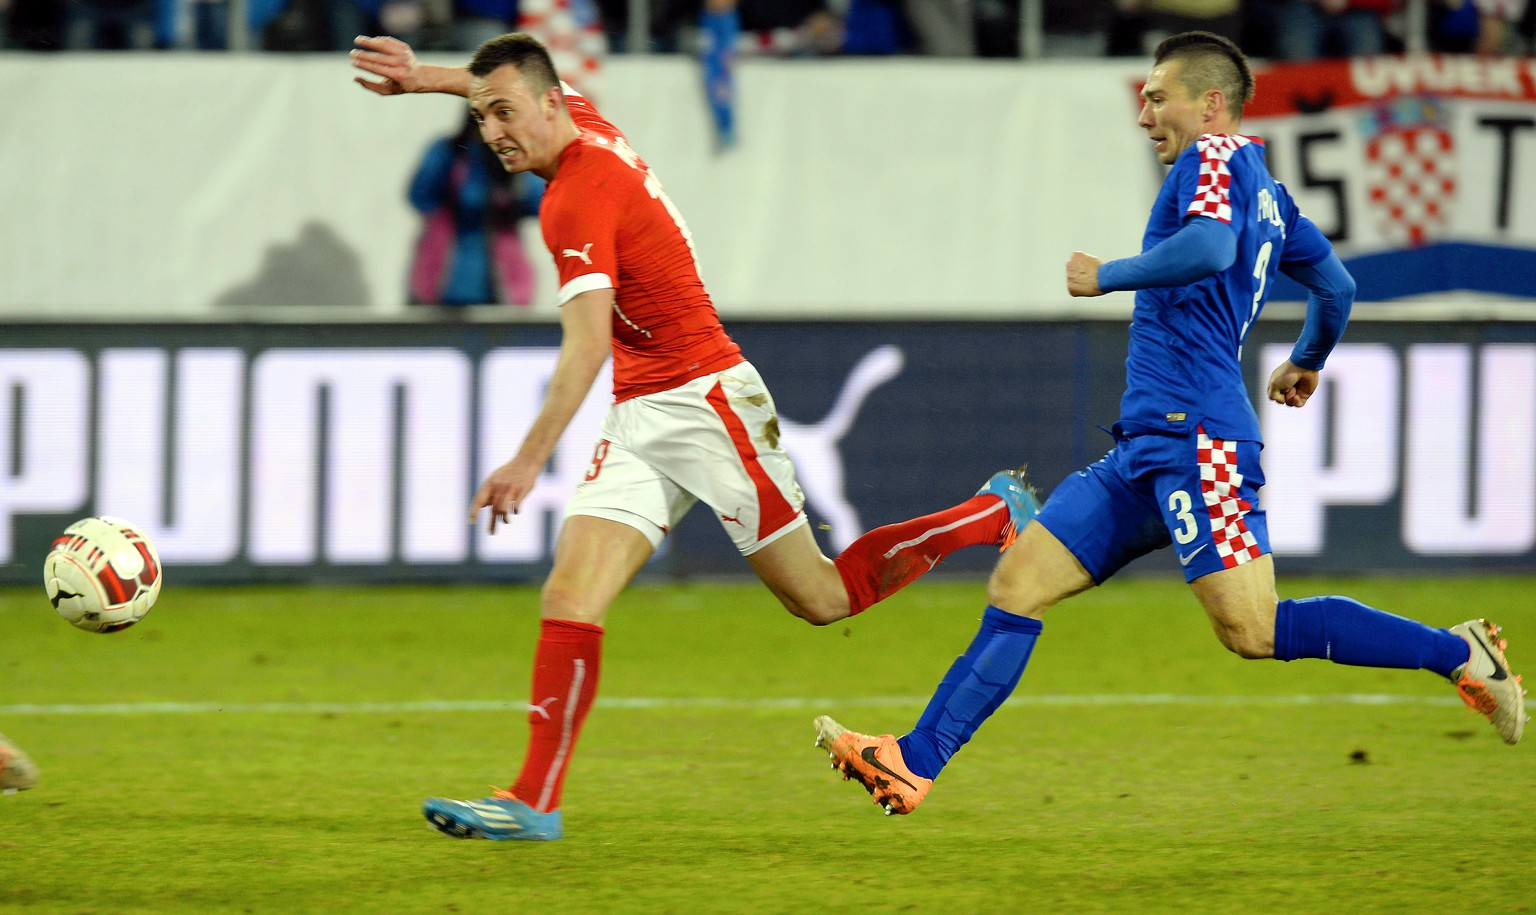 Swiss Josip Drmic, left, scores the second goal for switzeralnd during a test soccer match between Switzerland and Croatia at the AFG Arena in St. Gallen, Switzerland, Wednesday, March 5, 2014. (KEYSTONE/Walter Bieri)